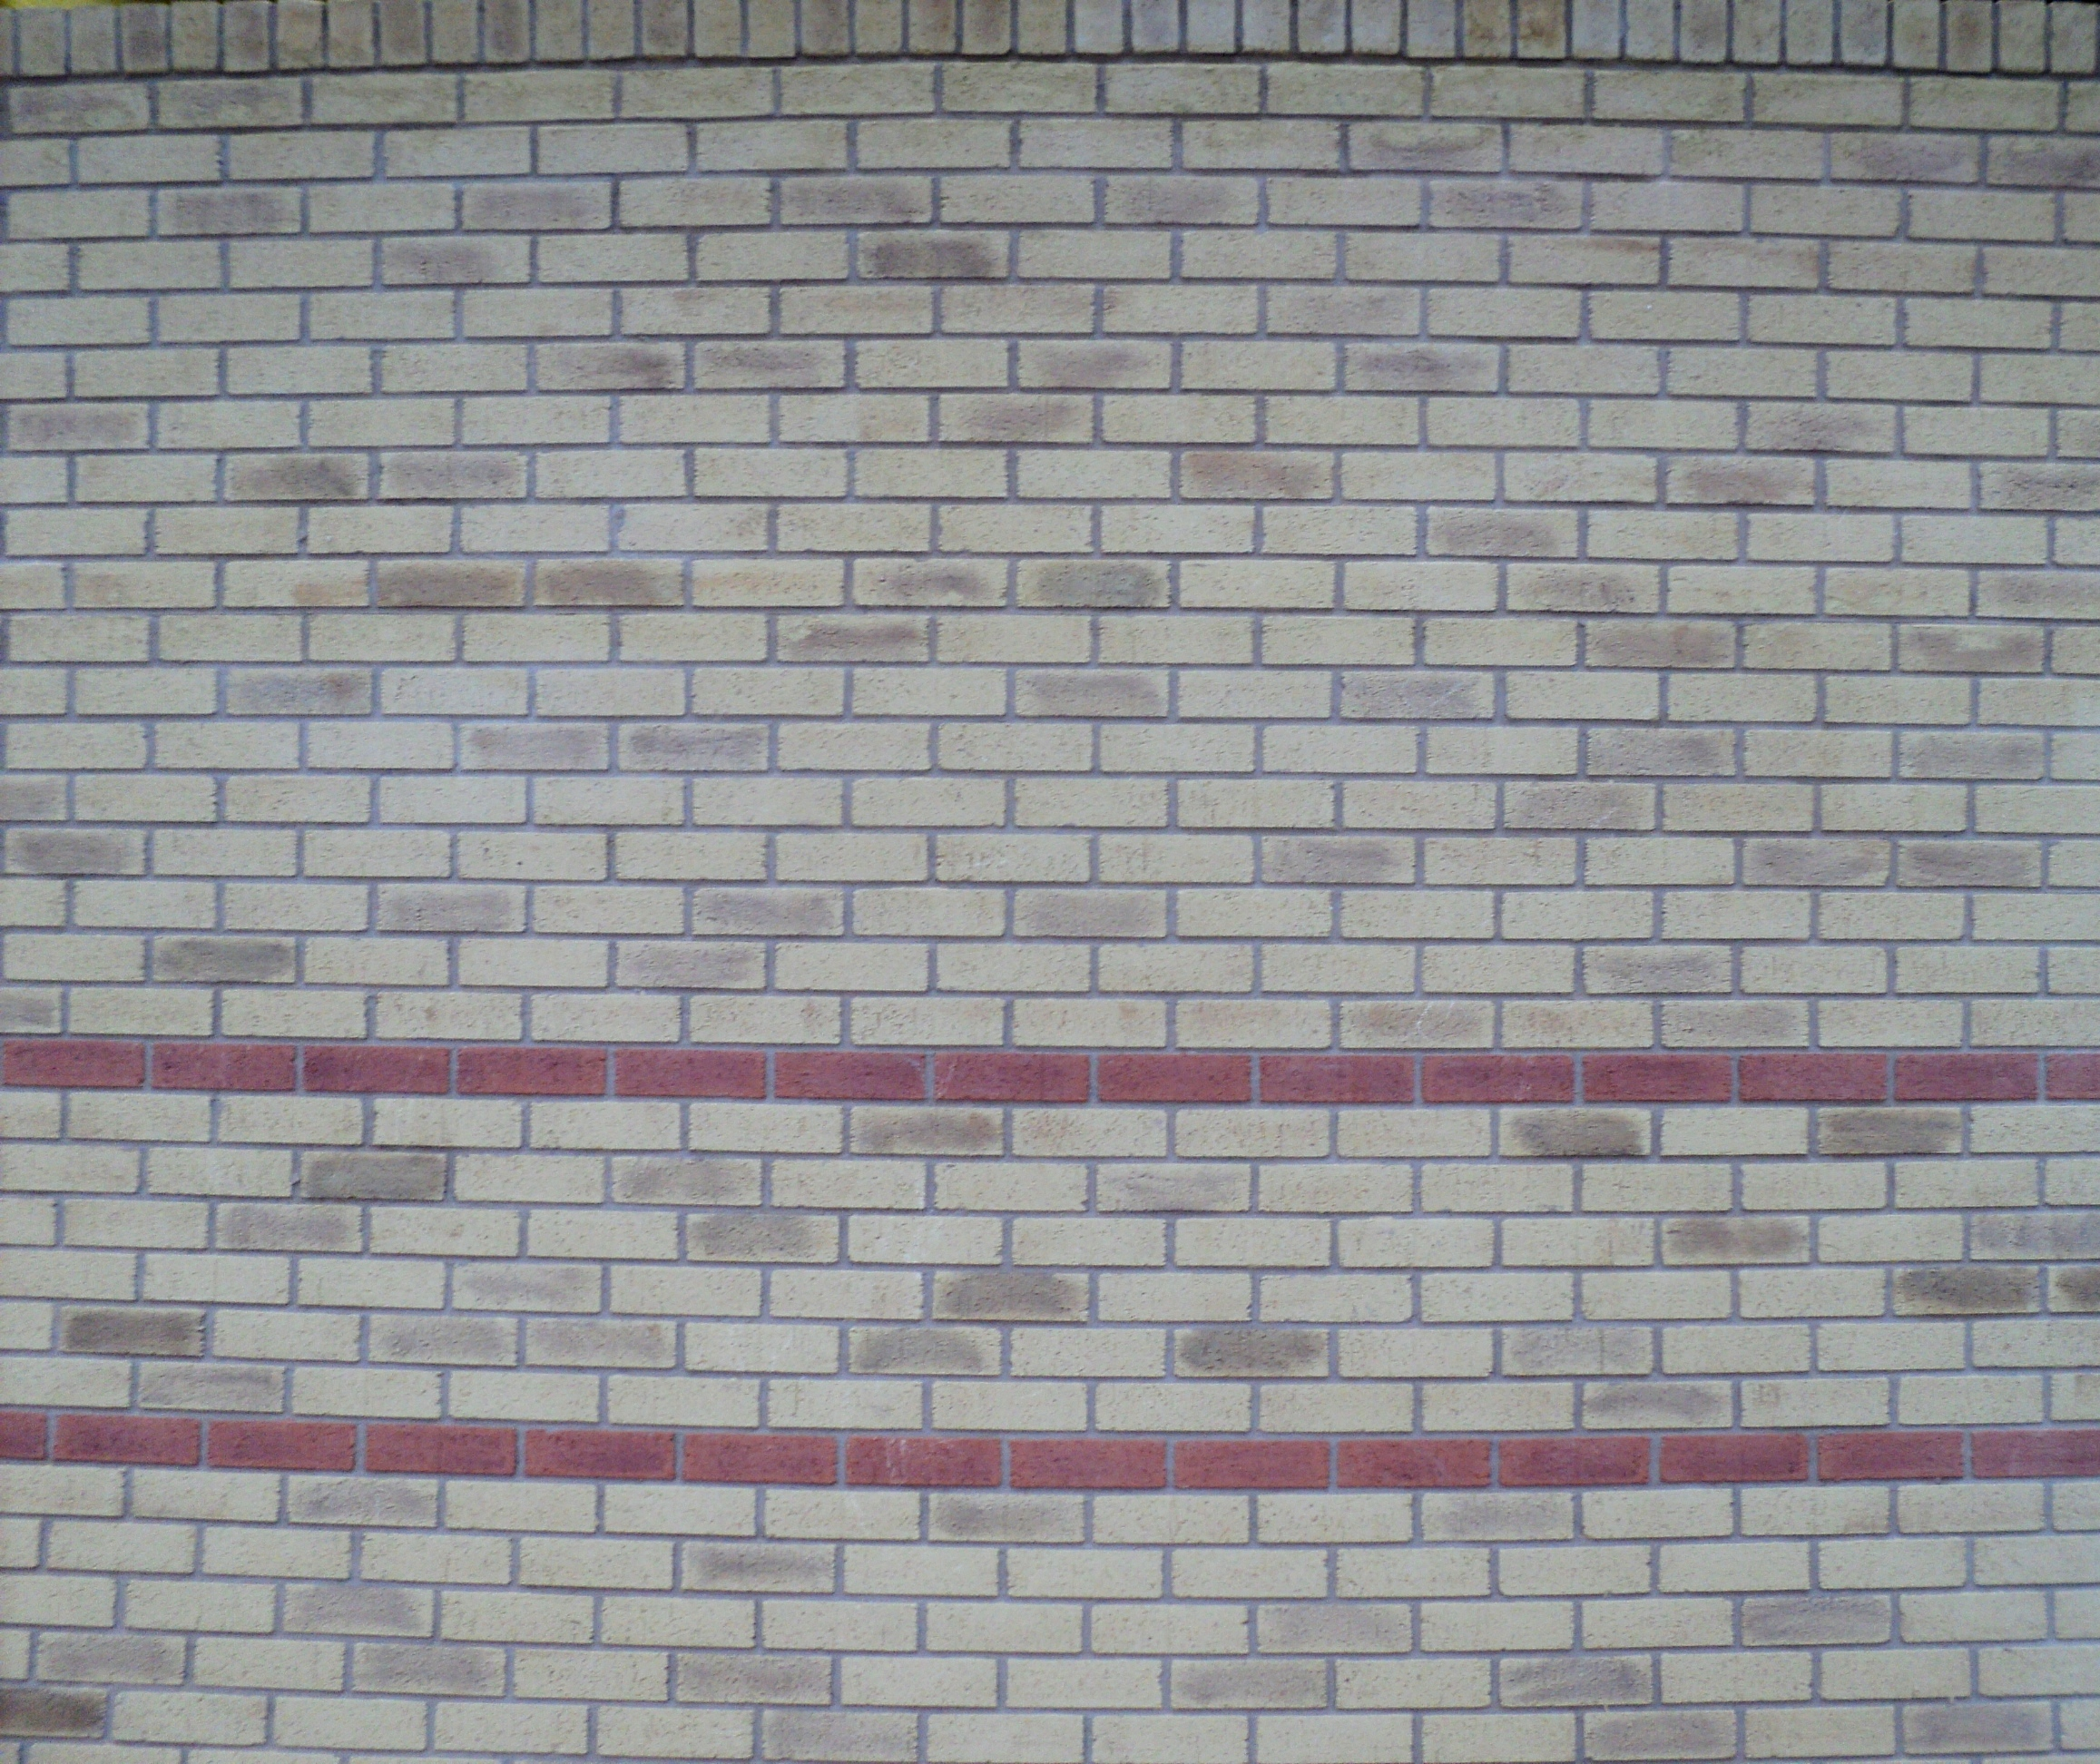 Buff brick with red stretcher band